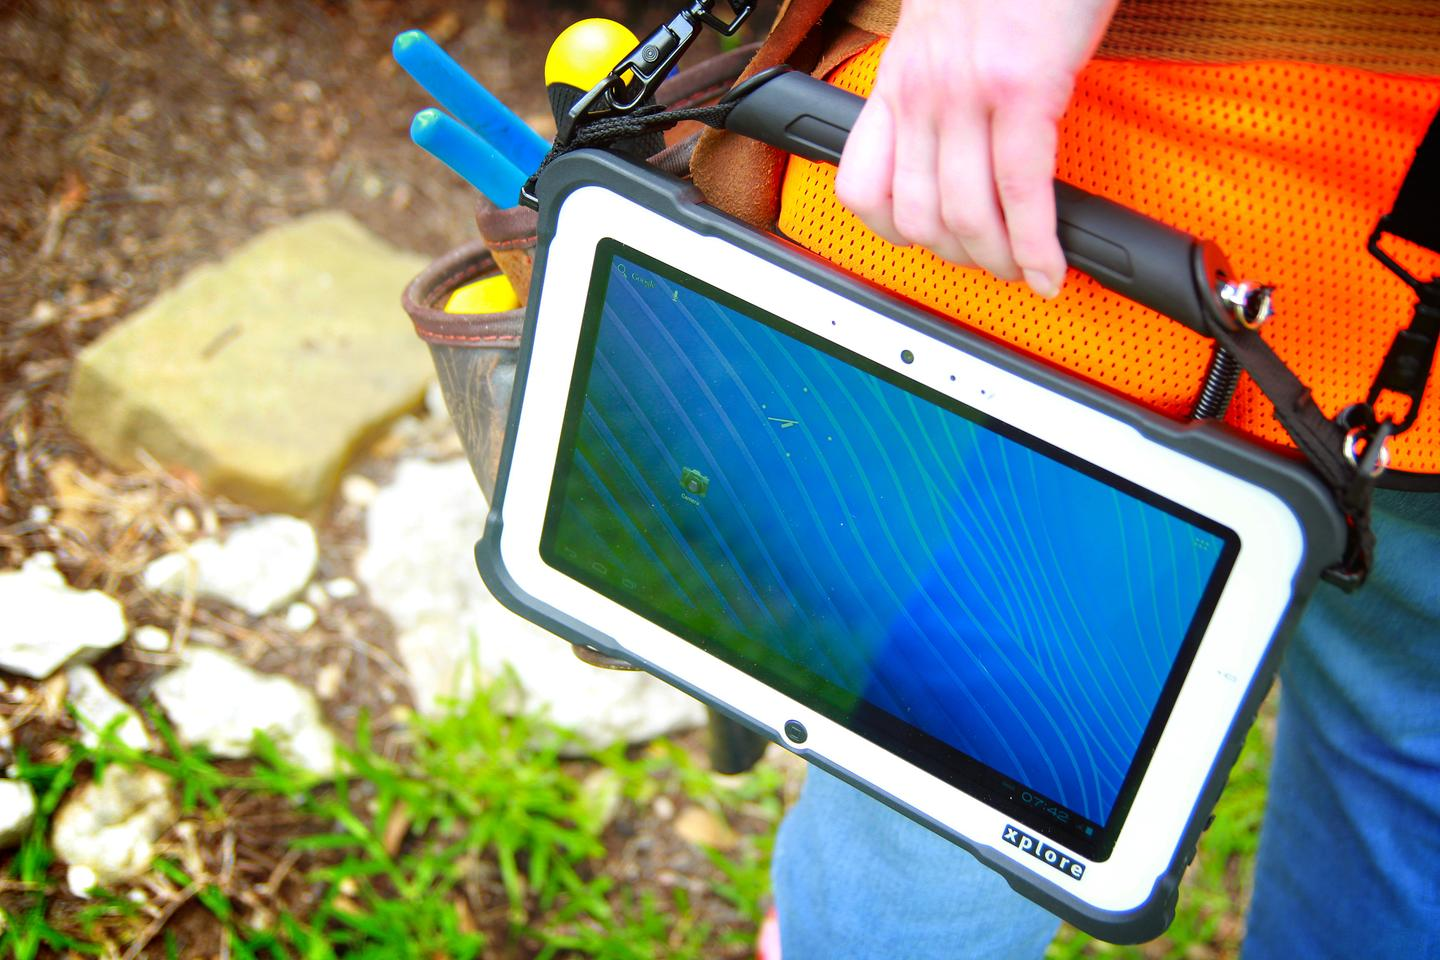 Xplore Technologies has introduced its first rugged Android tablet, the RangerX